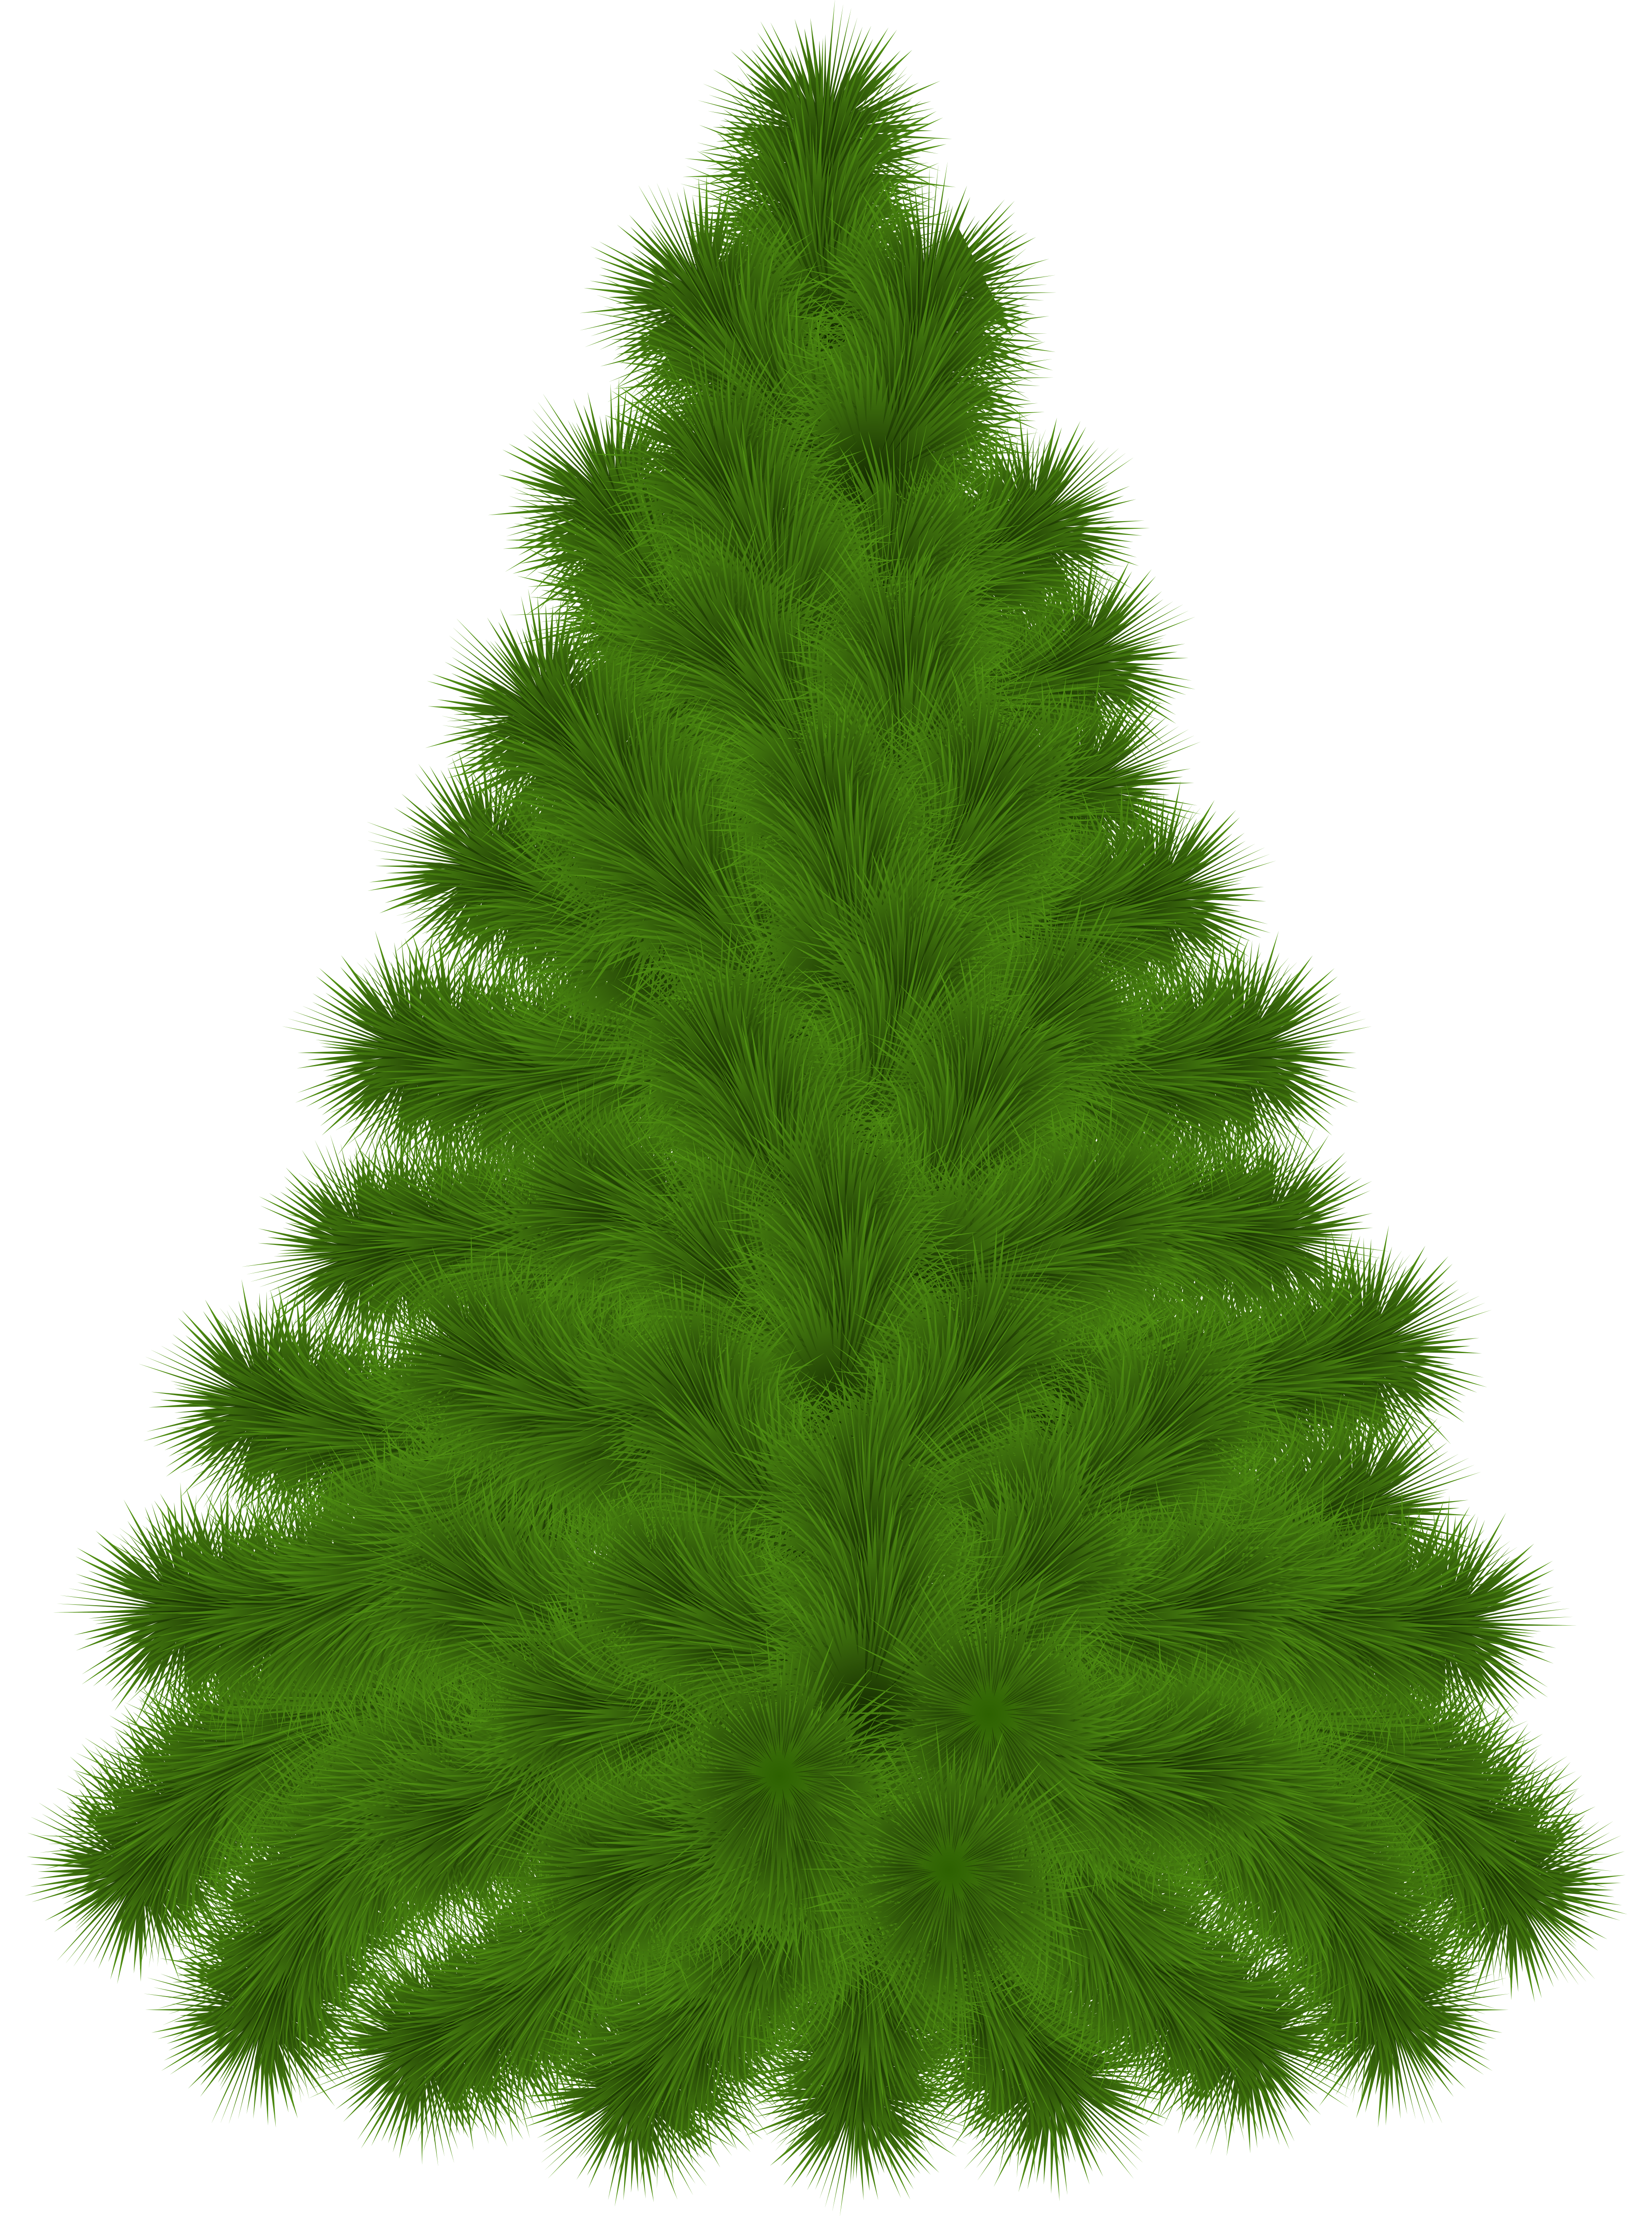 Tree clipart picture gallery. Png pine trees jpg freeuse